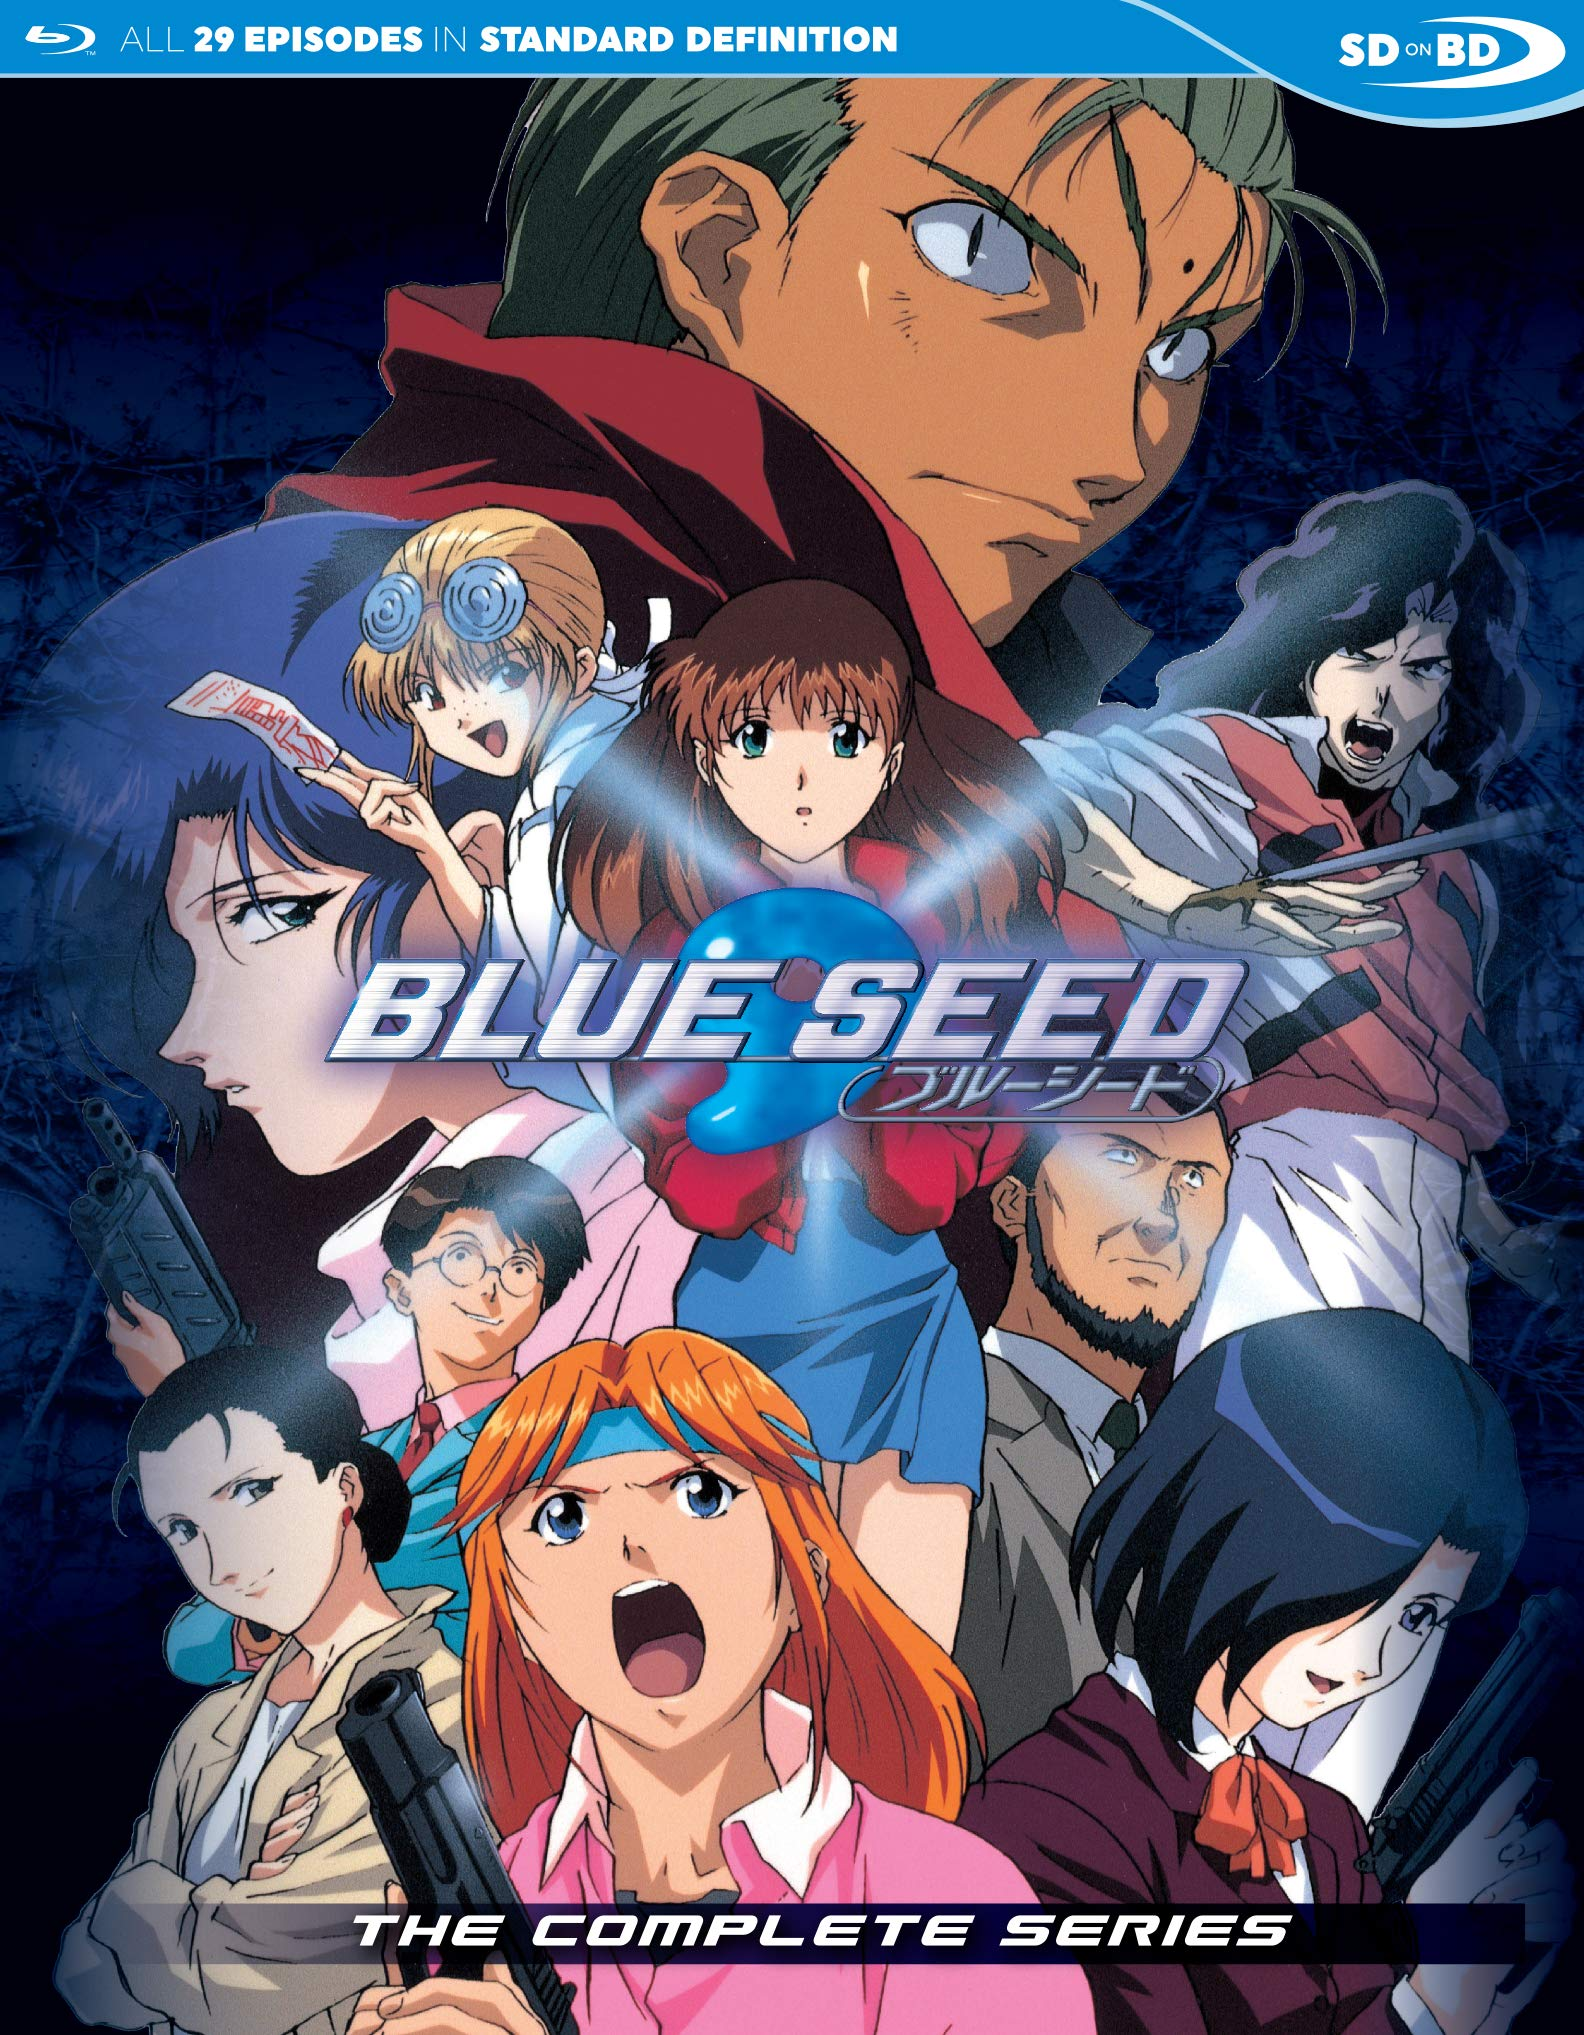 Blue Seed Complete Series SDBD [Blu-ray] by Discotech Media